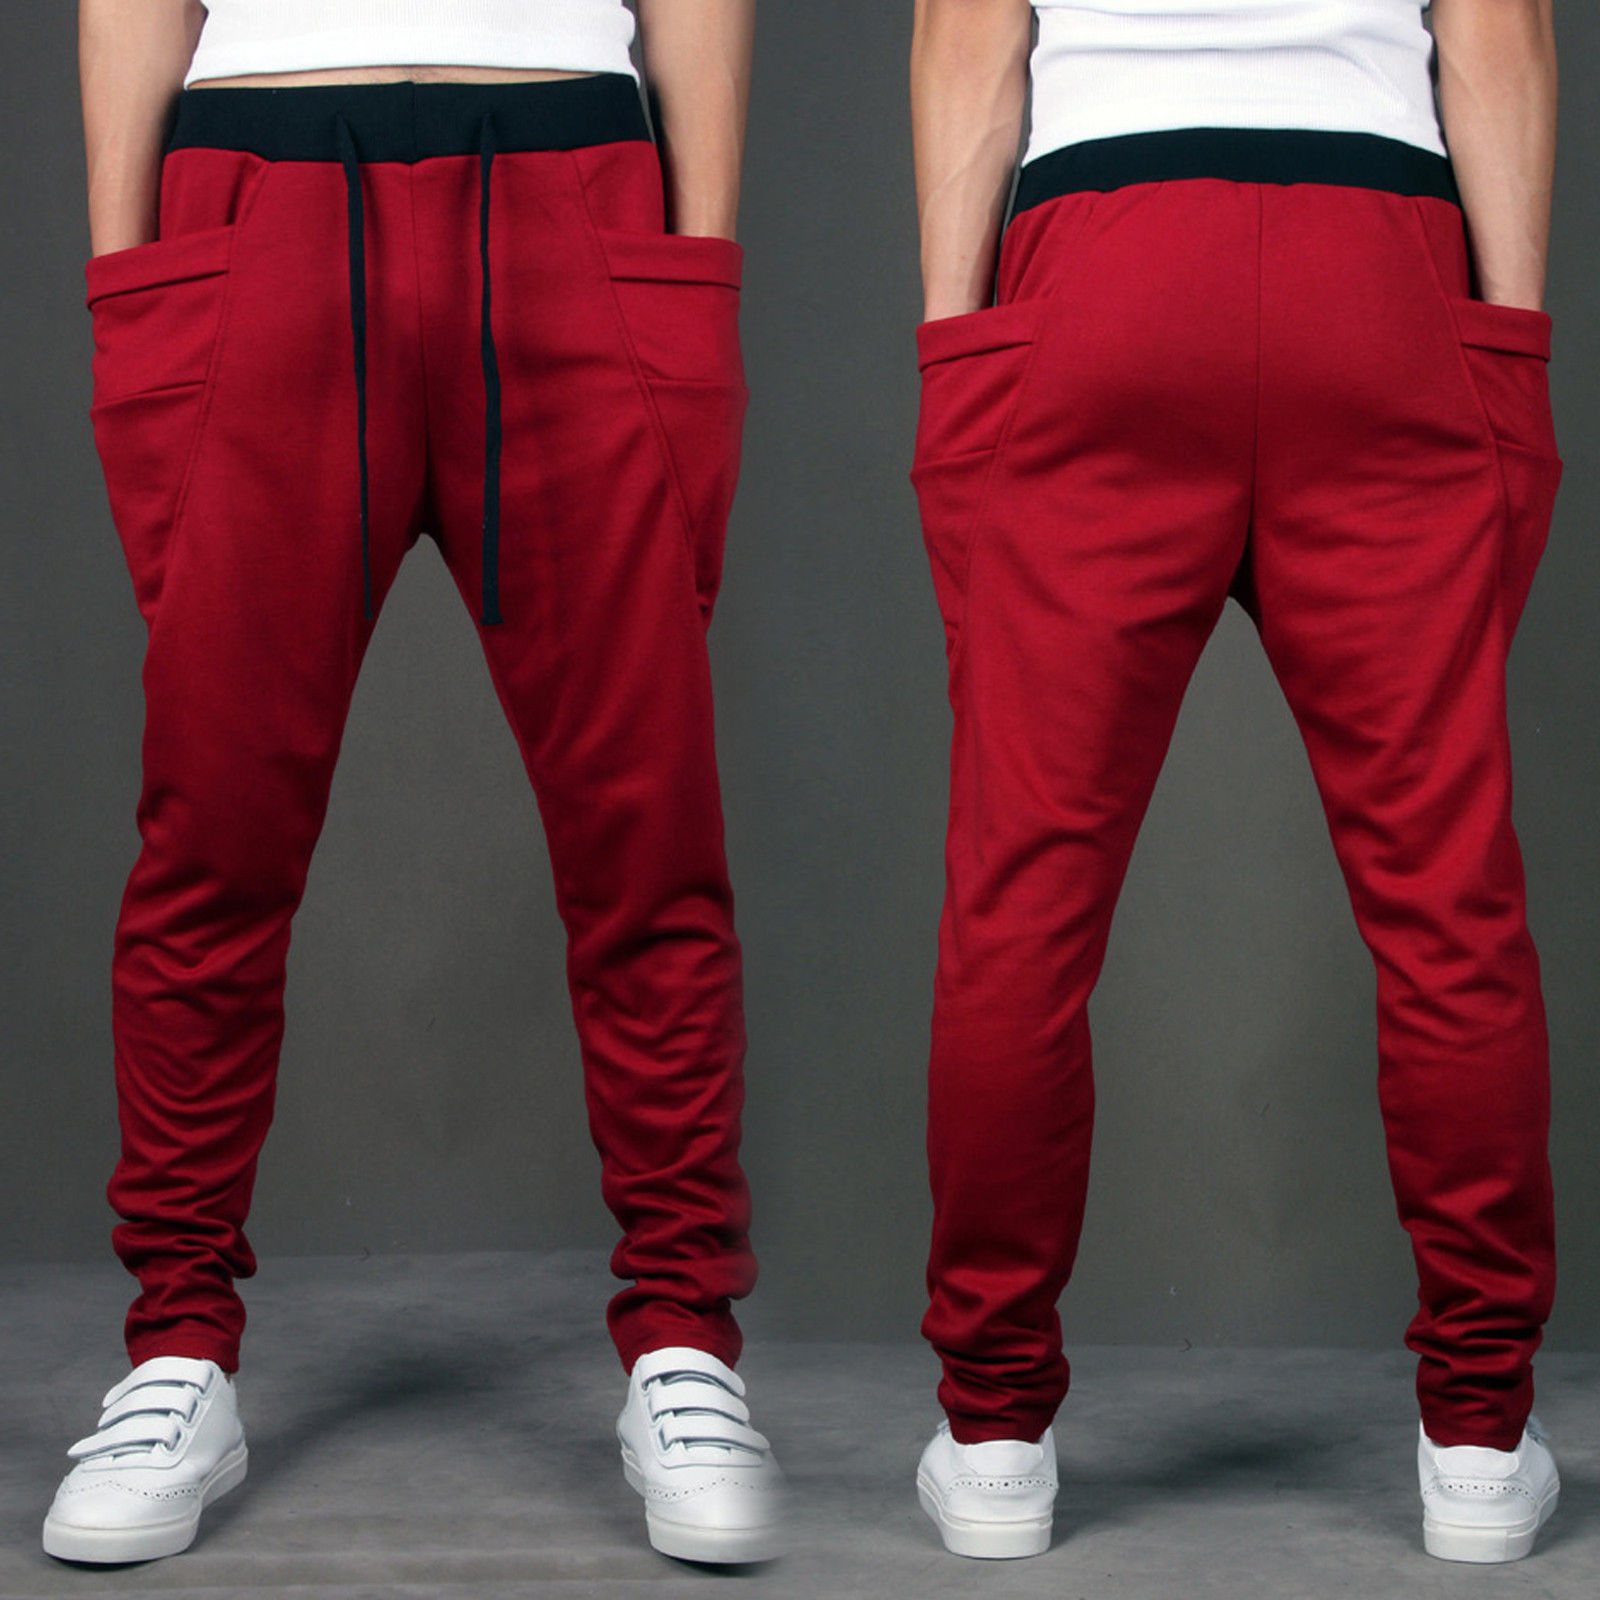 Mens Casual Jogger Dance Sportwear Baggy Harem Pants Slacks Trousers Sweatpants-Red- L